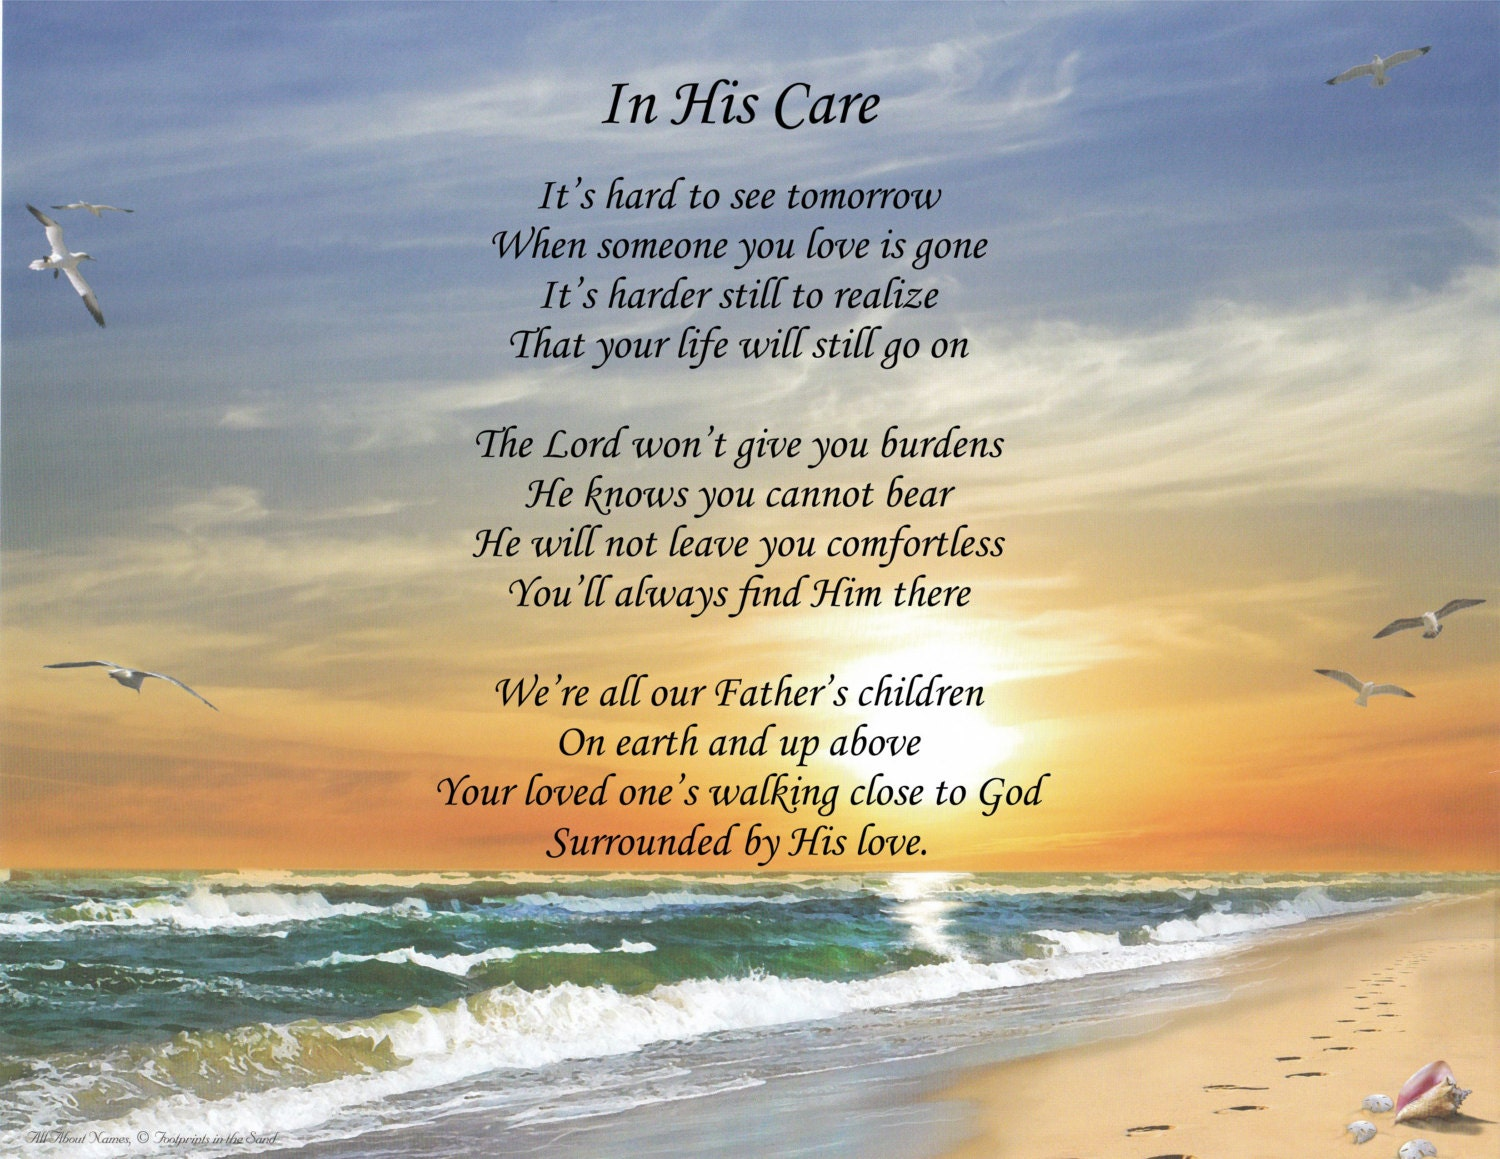 Inspirational Poem In His Care | Etsy